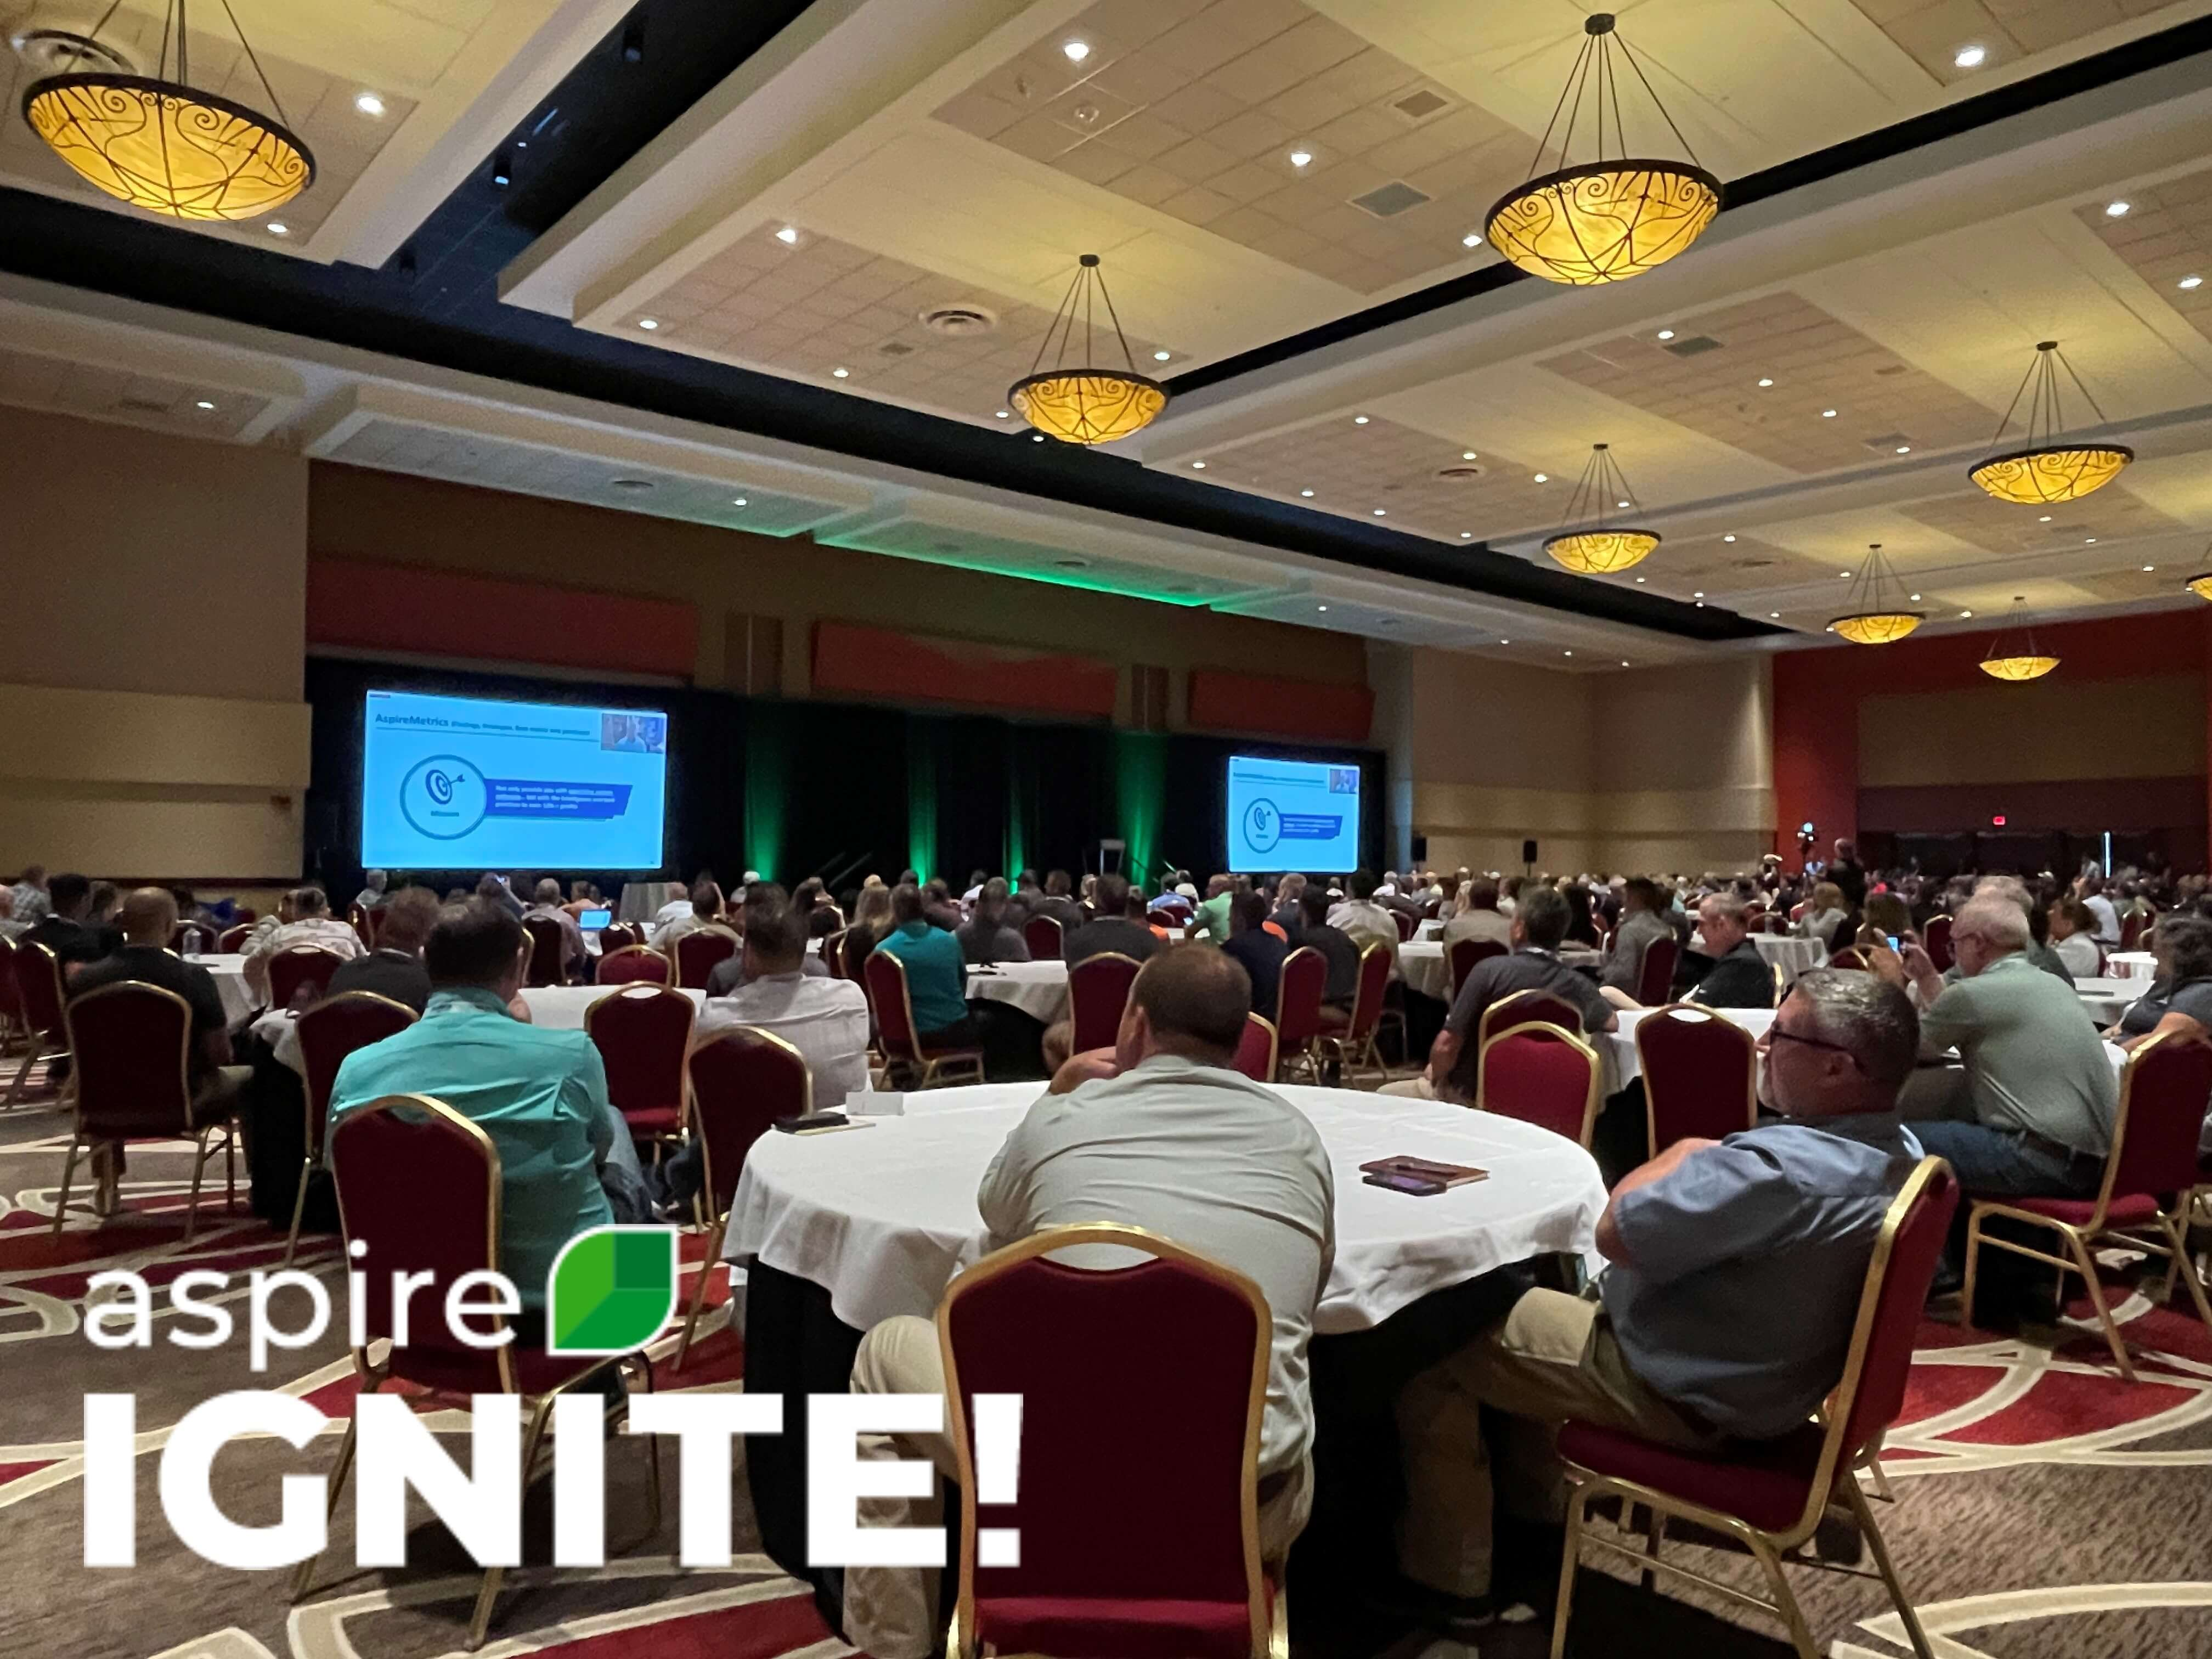 4 takeaways from the Aspire IGNITE! conference